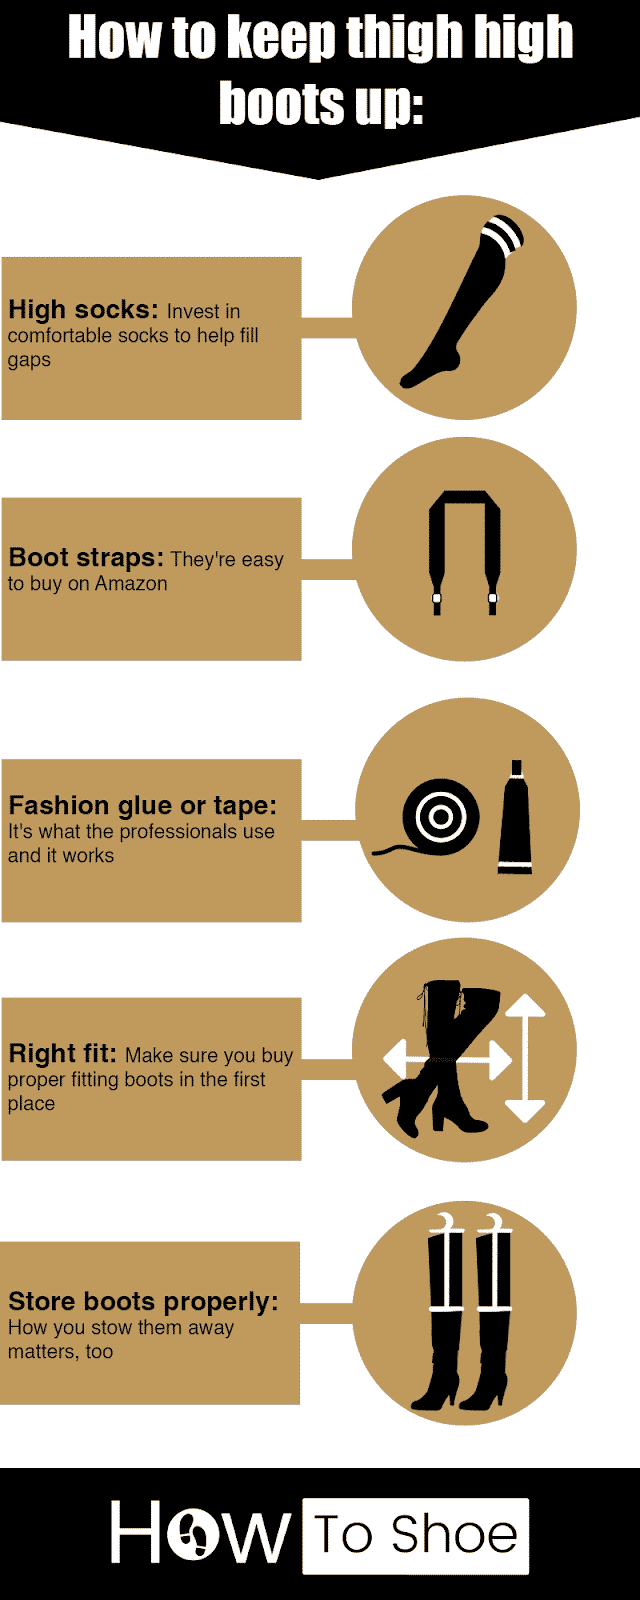 How to keep thigh high boots up